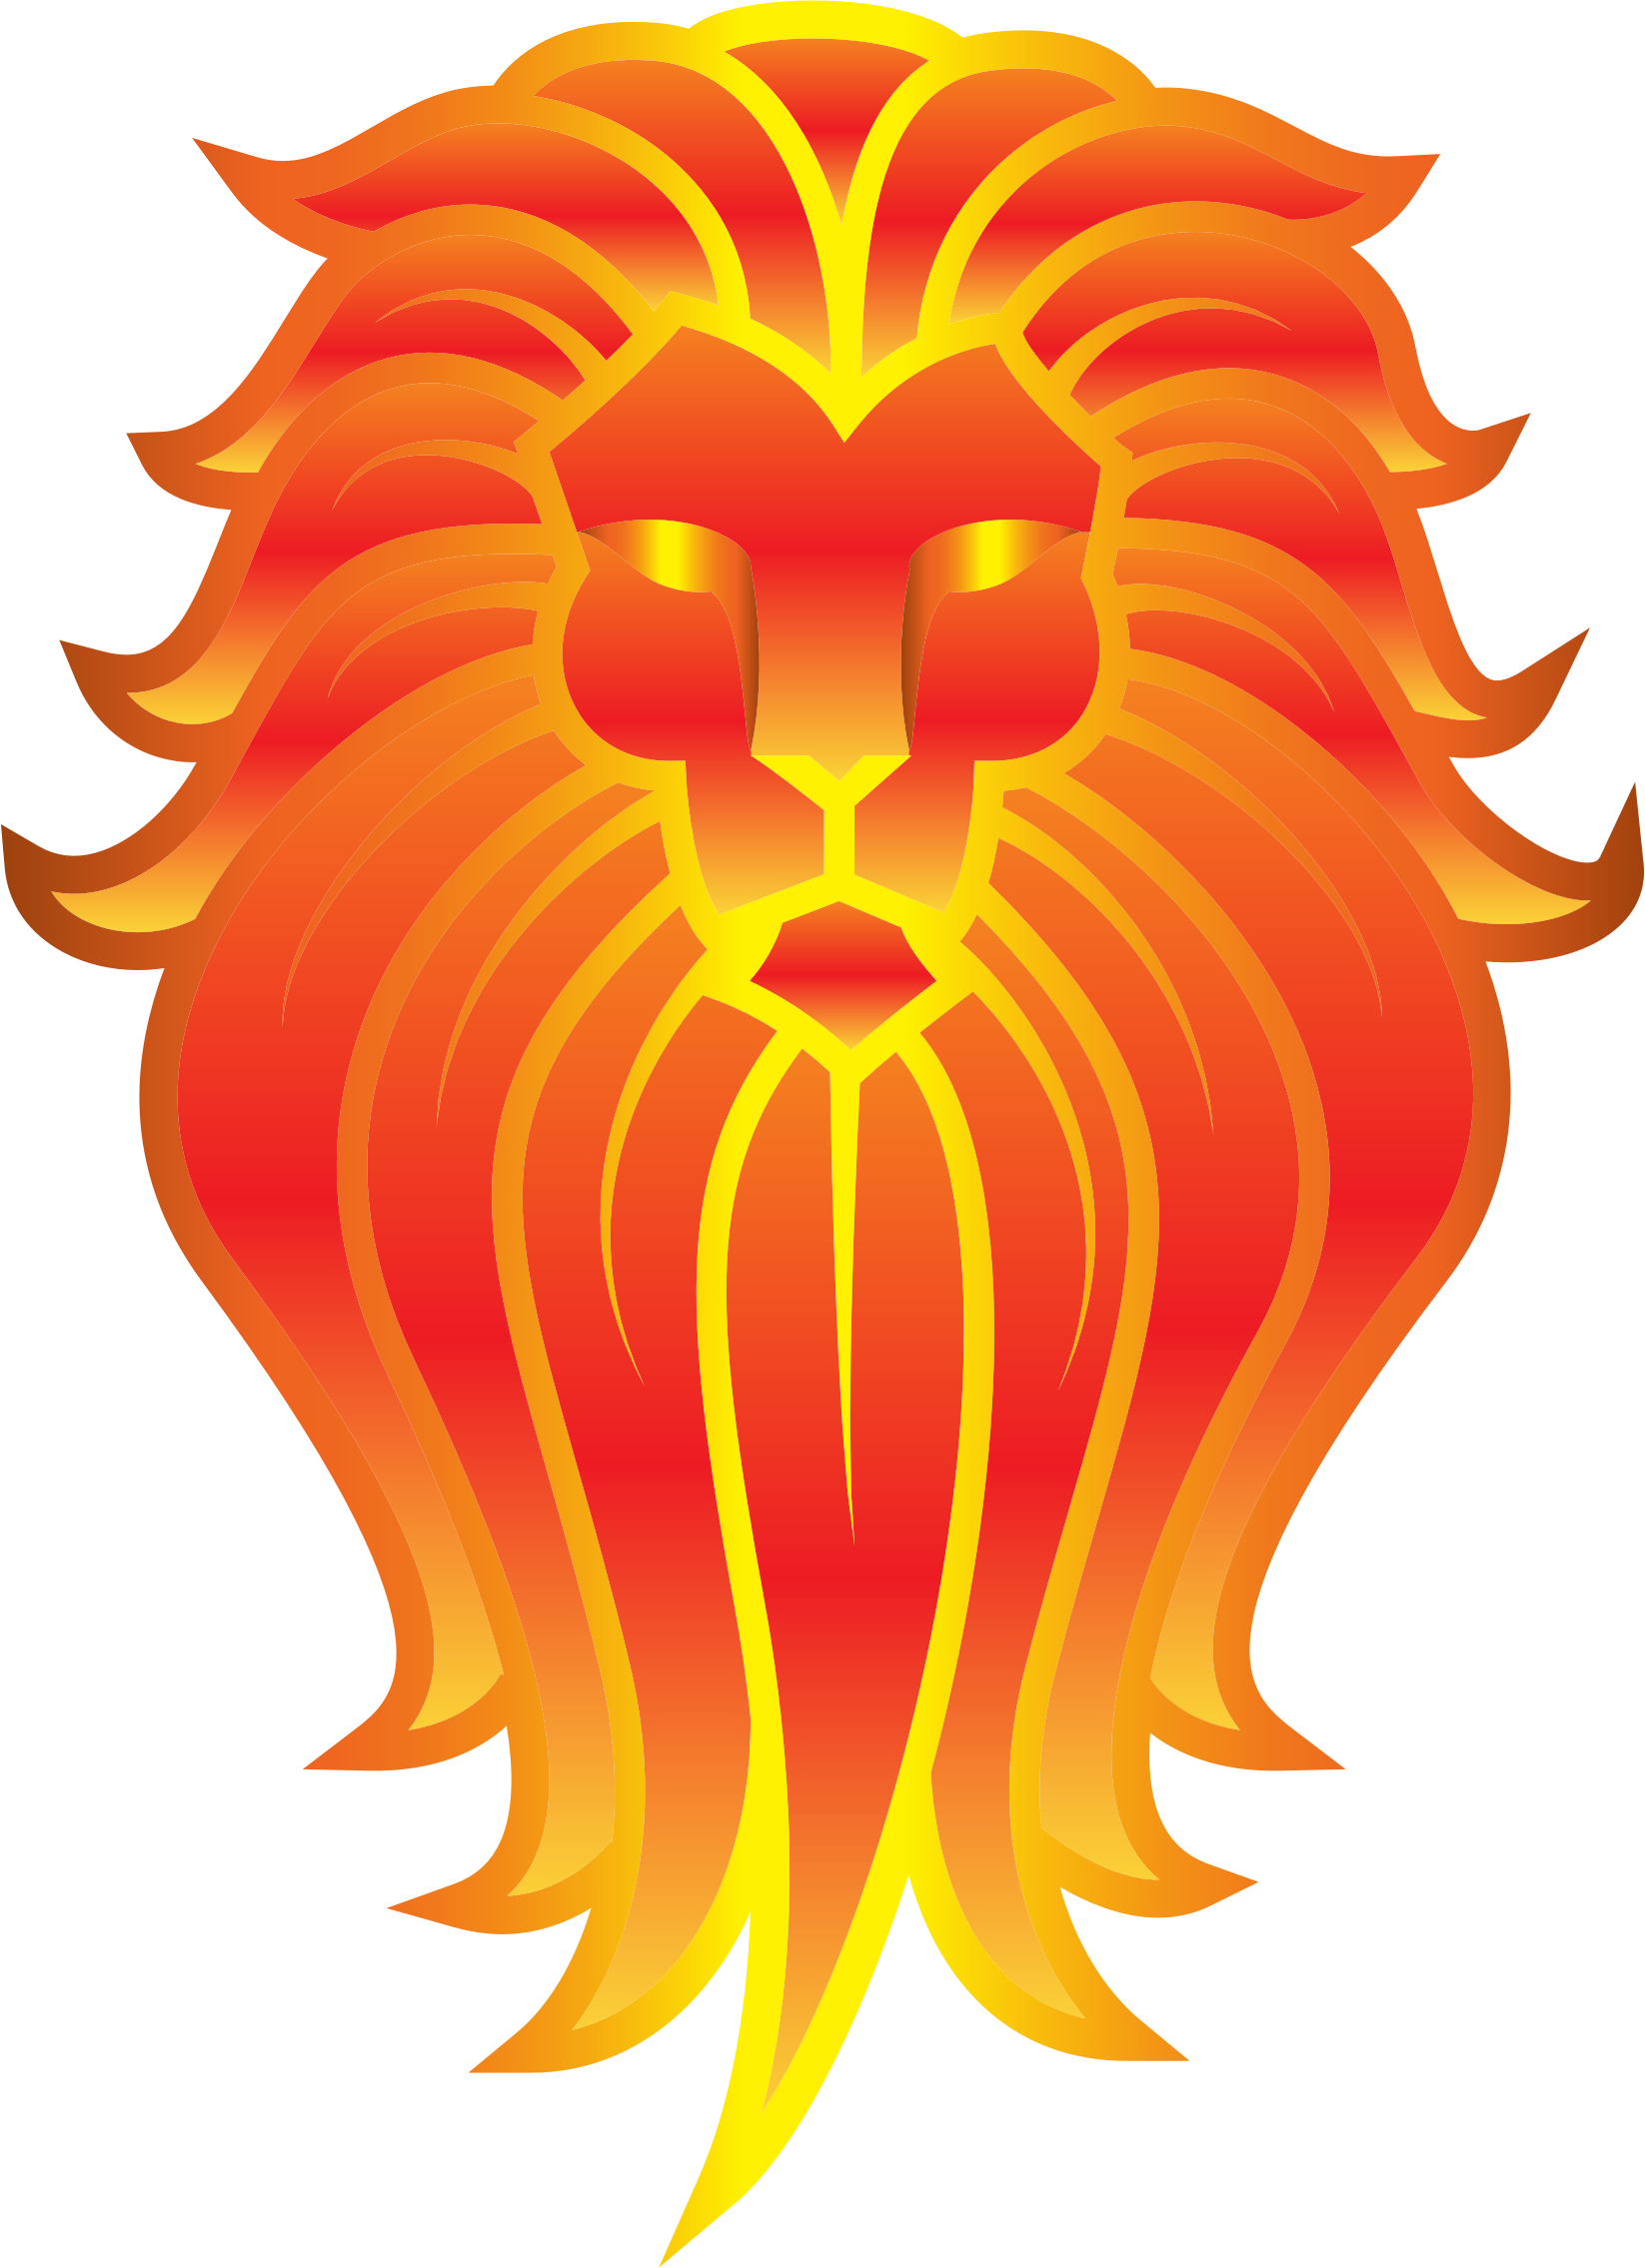 Chromatic Lion Face Tattoo 4 No Background by GDJ